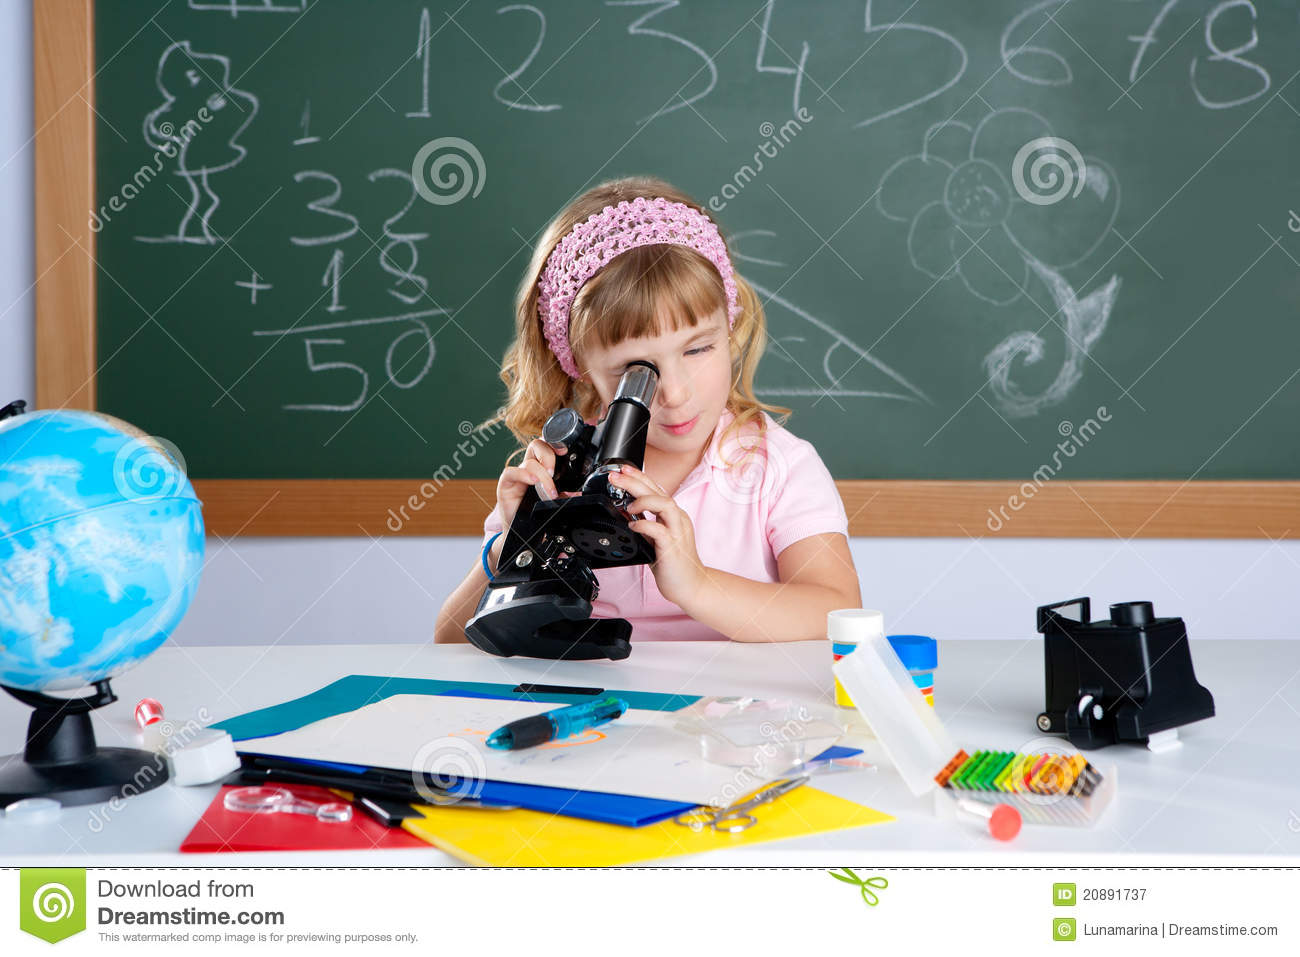 Children little girl at school with microscope